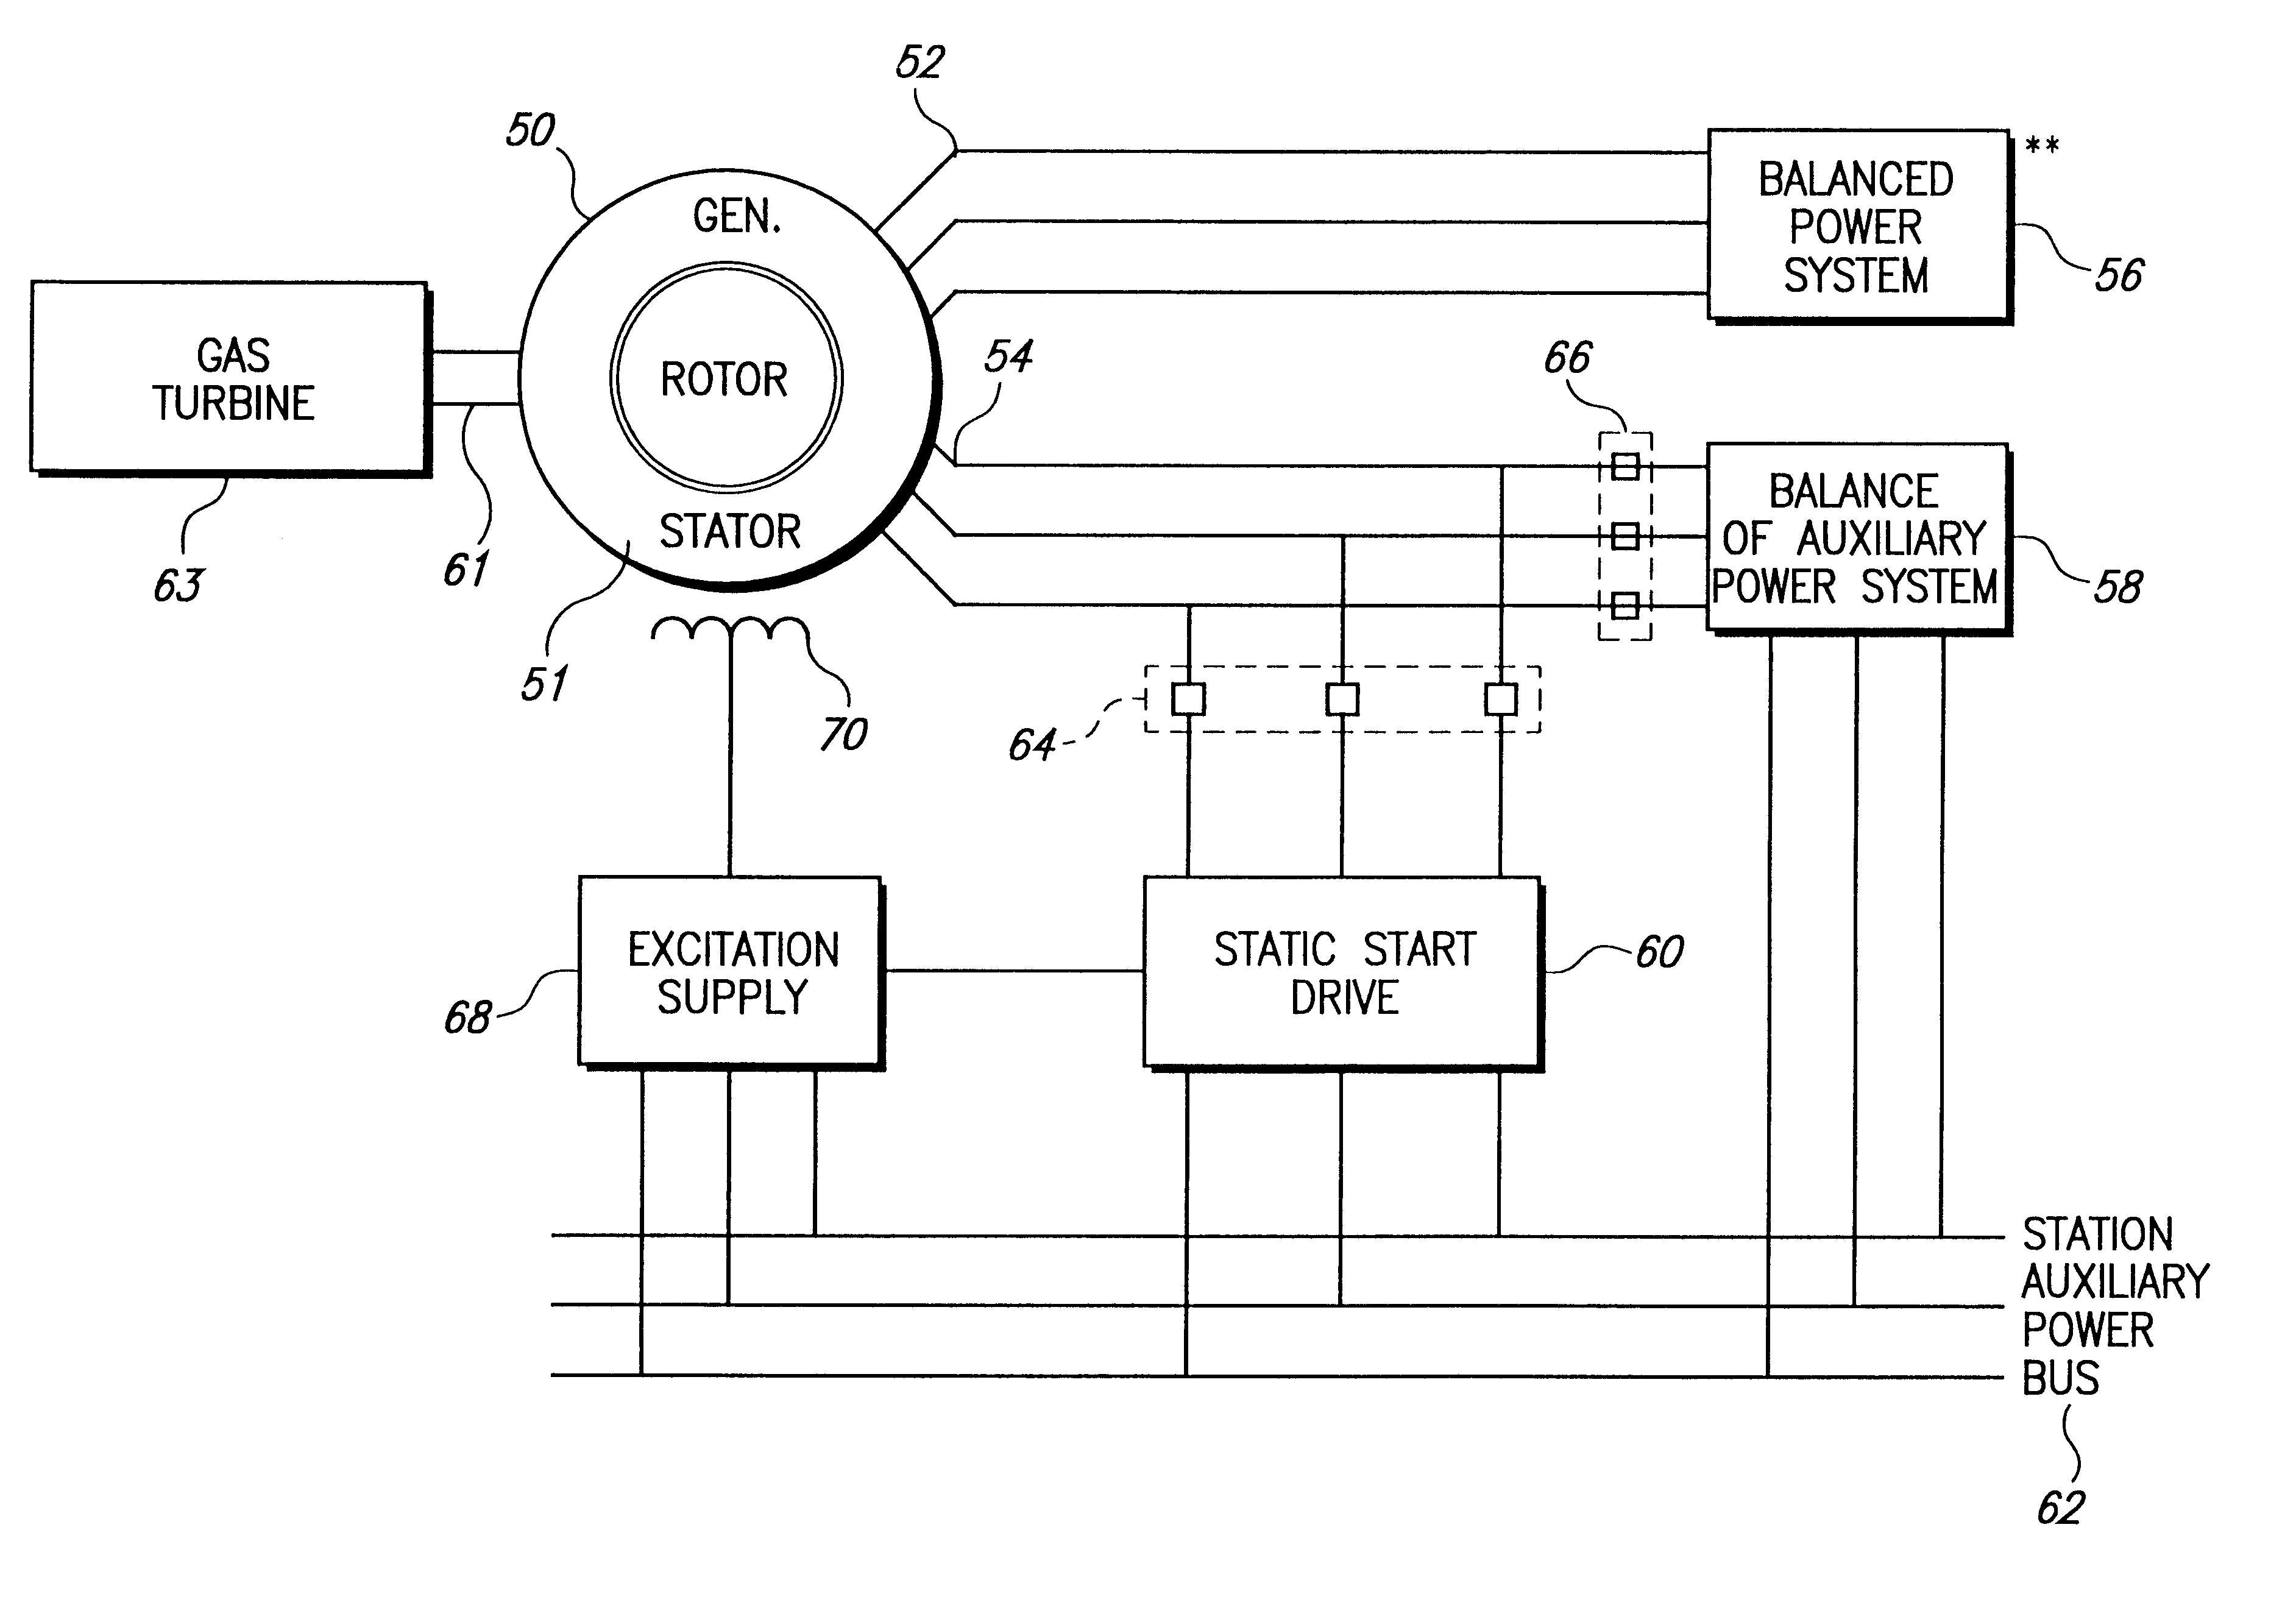 Patent US Synchronous generator having auxiliary power